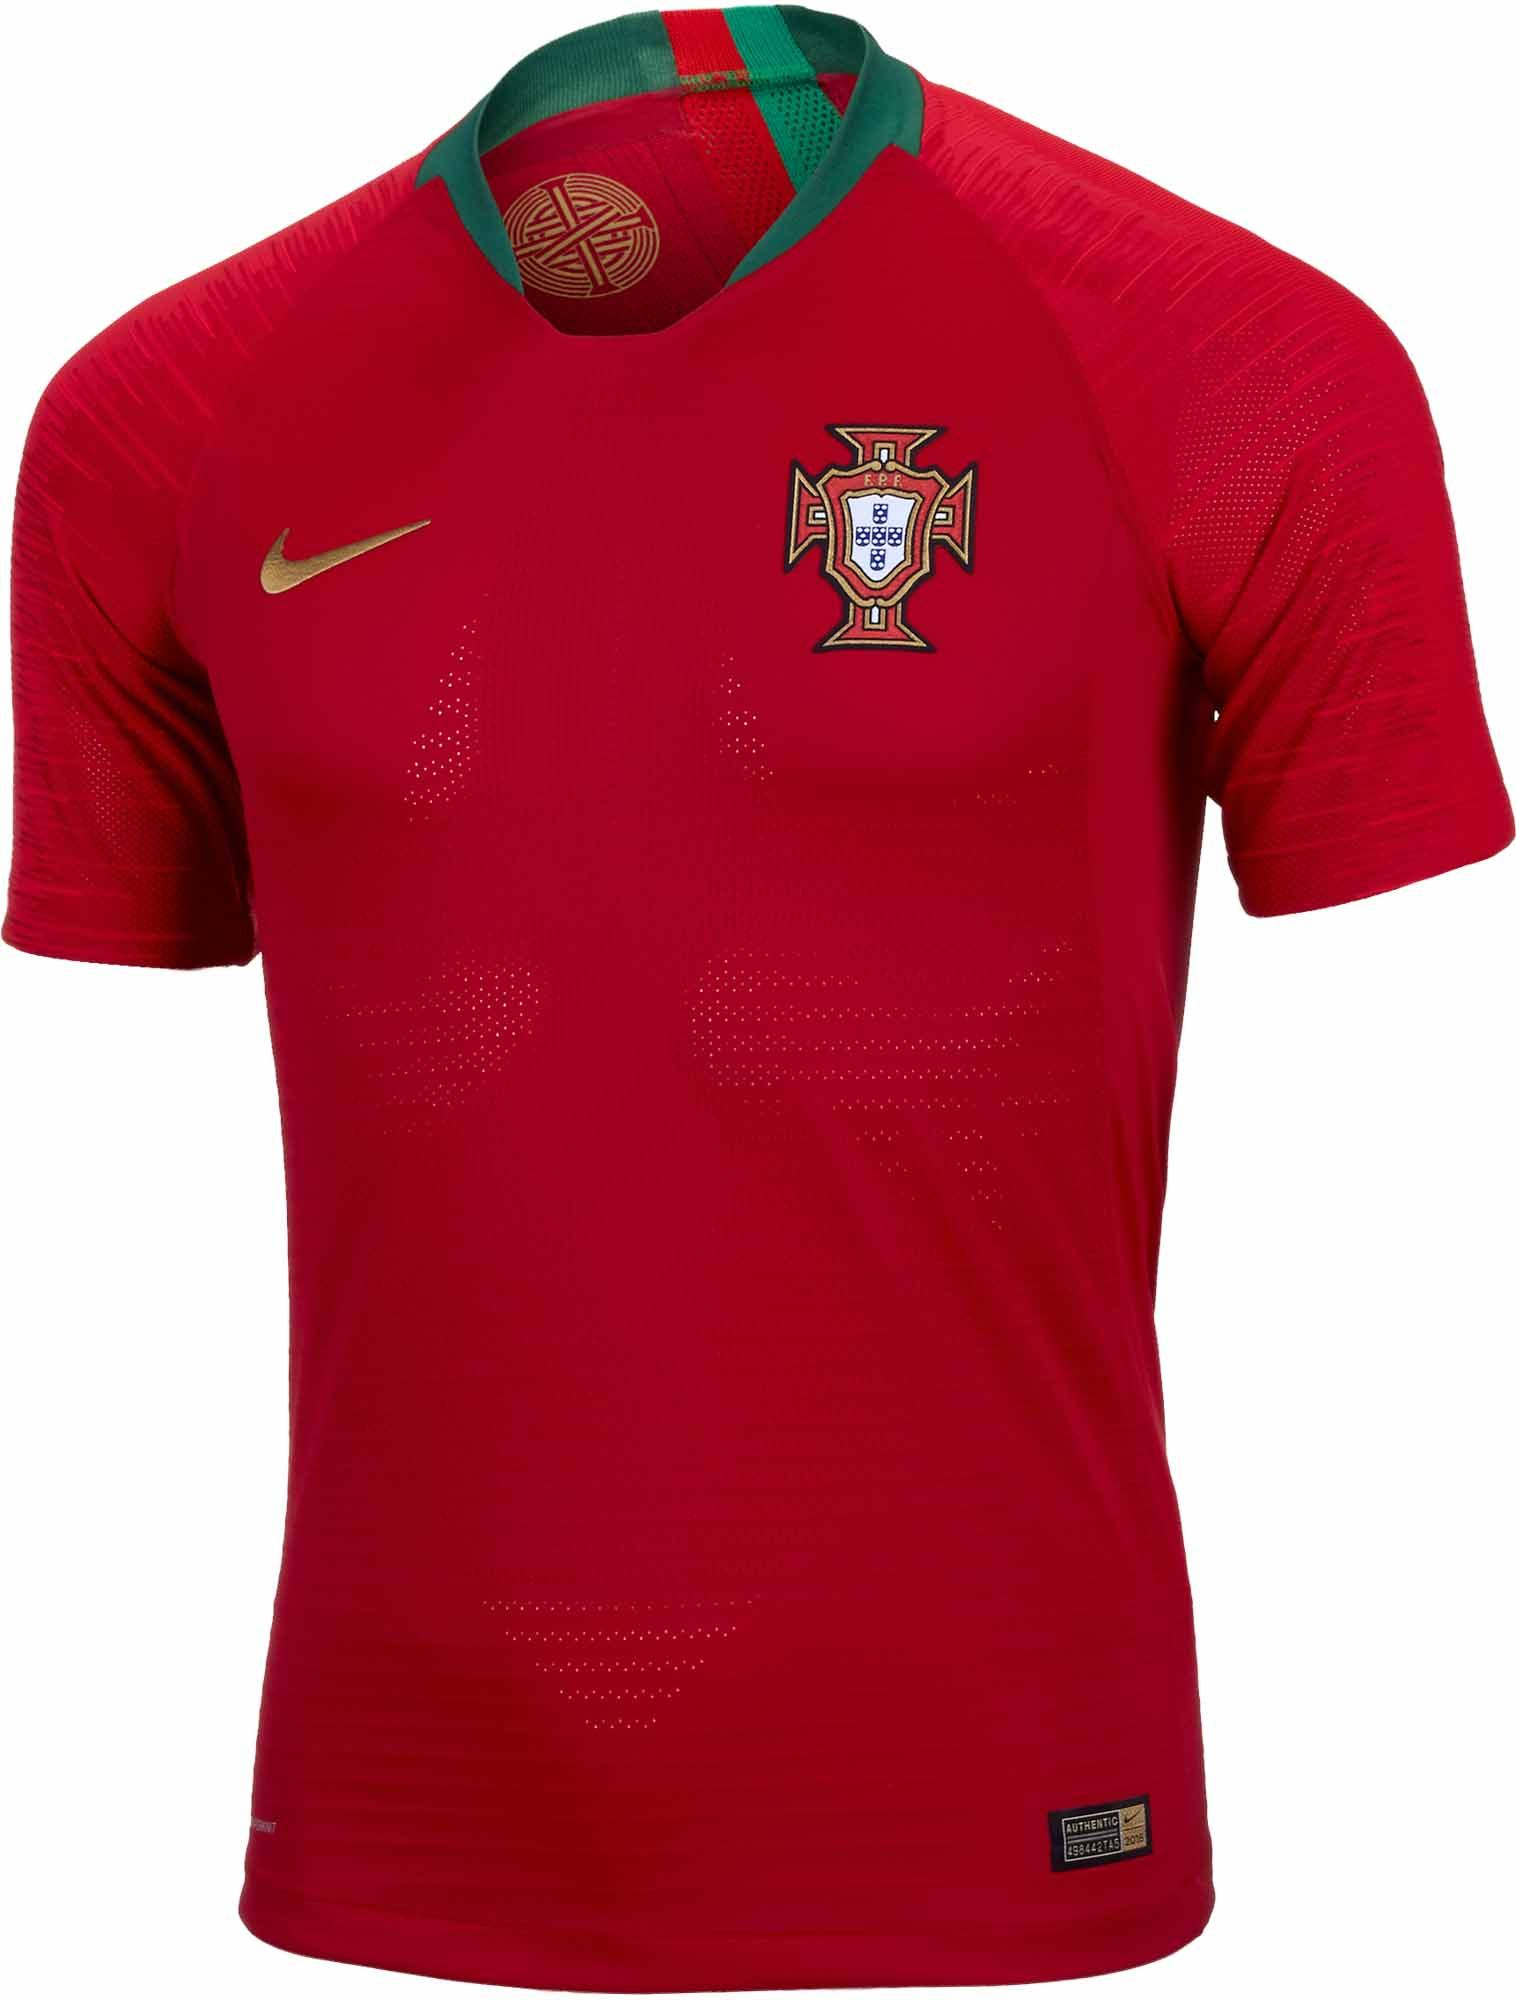 094ece9b1f 2018 19 Nike Portugal Home Match Jersey. Get yours from SoccerPro today.